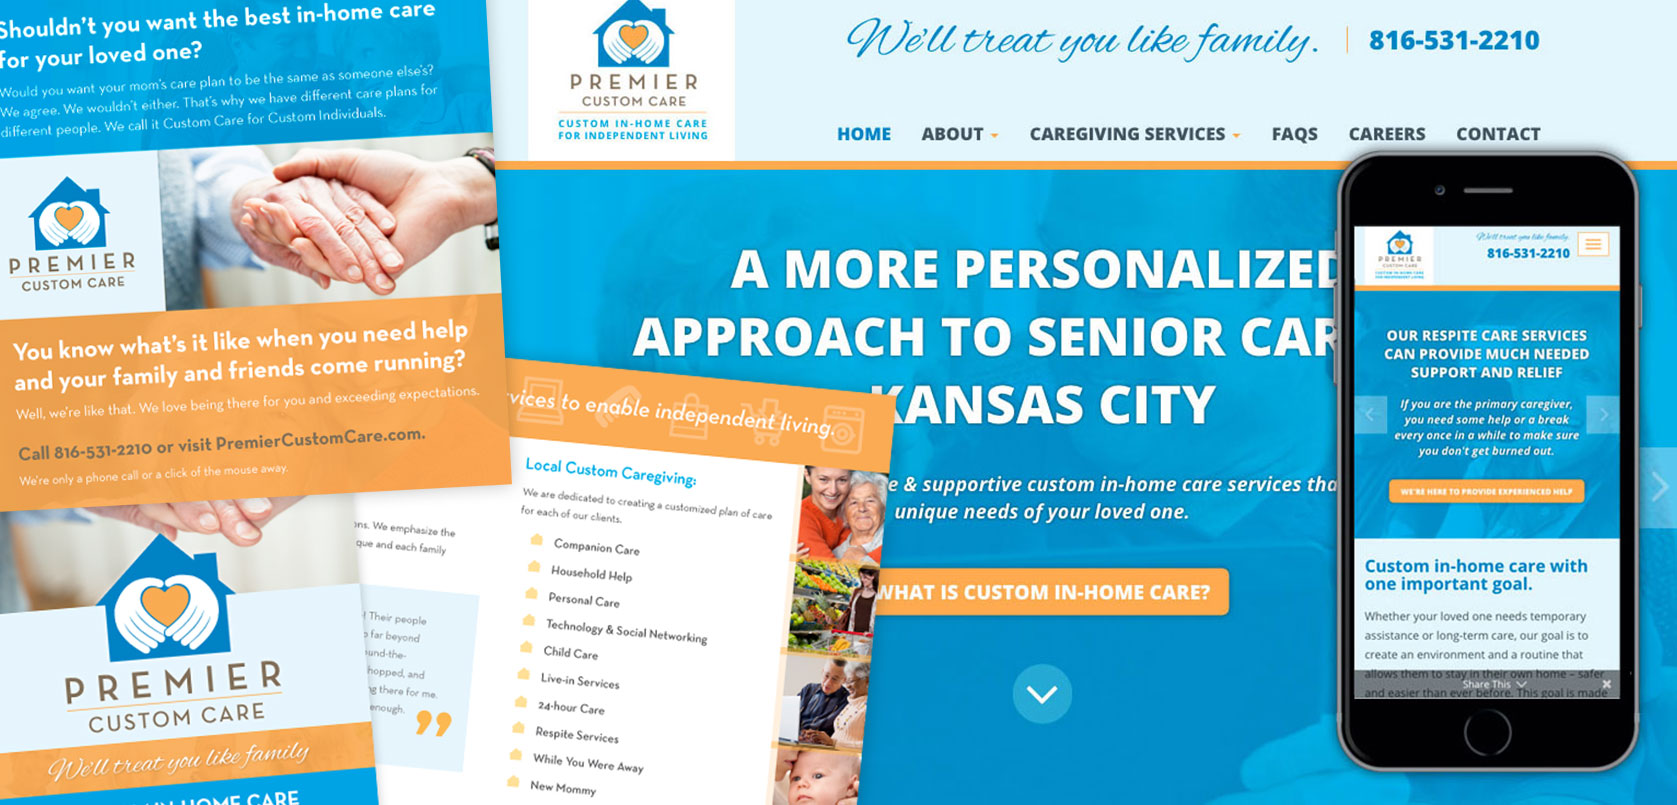 Premier Custom Care Website Design